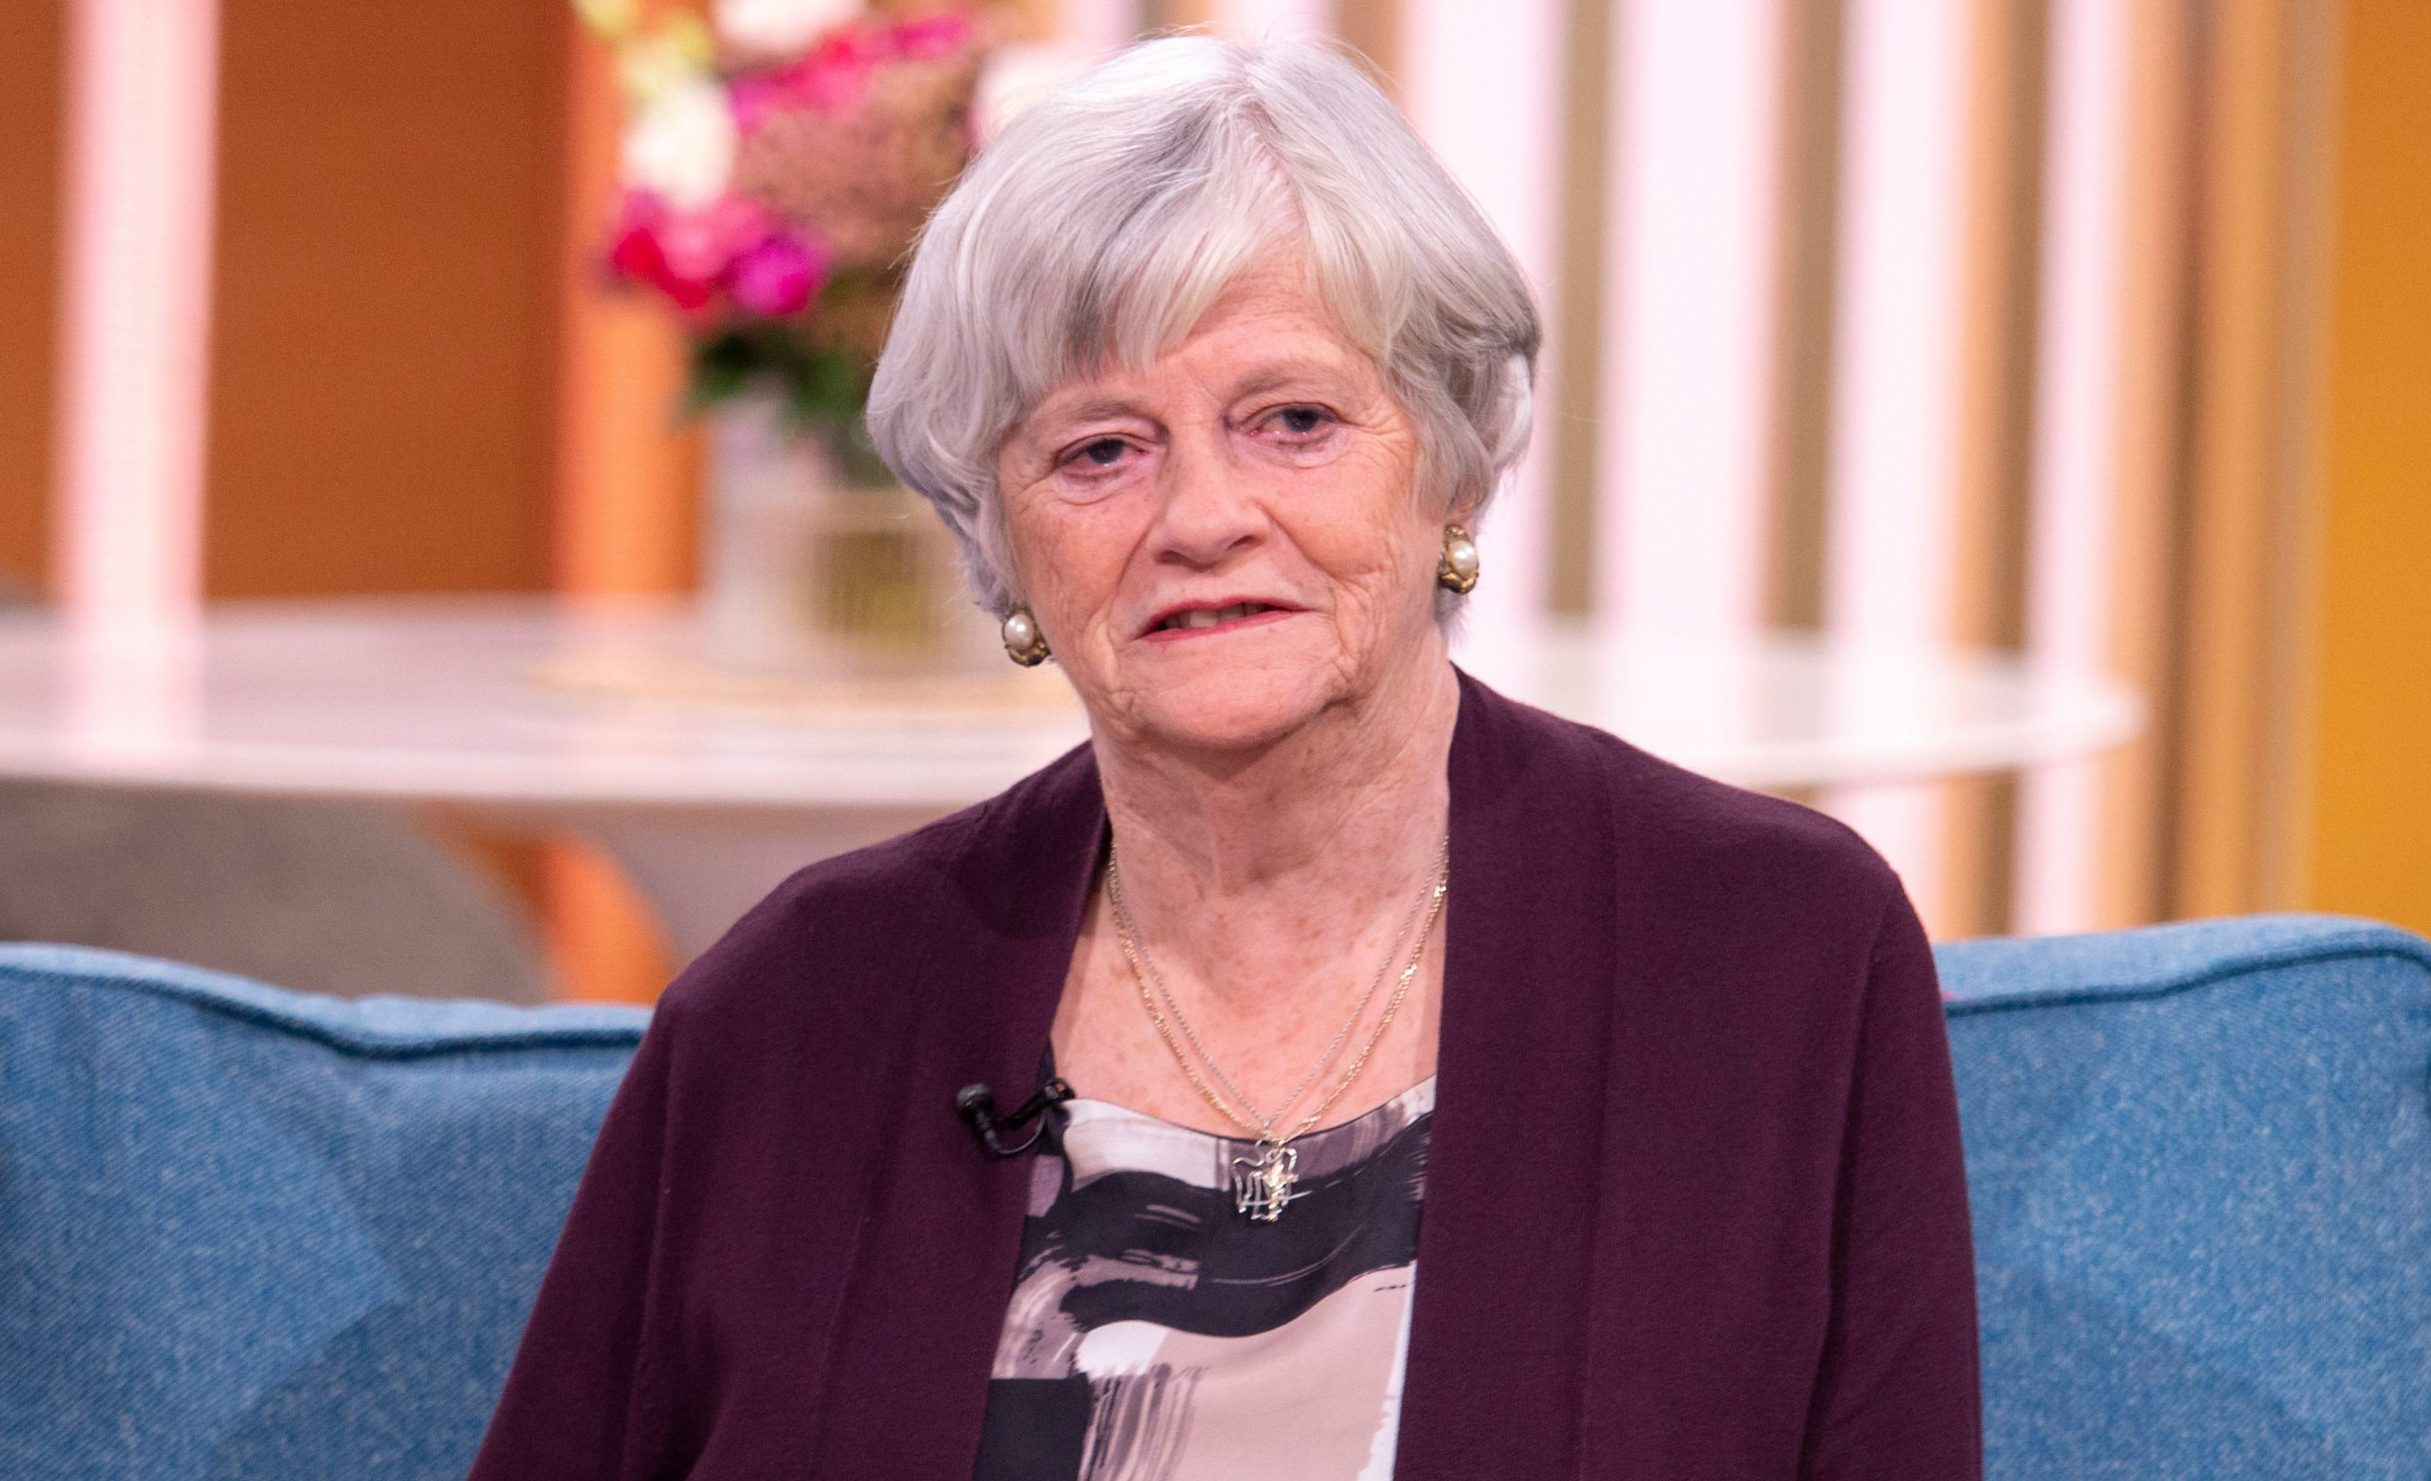 Ex-Tory minister Anne Widdecombe to join Nigel Farage's Brexit party